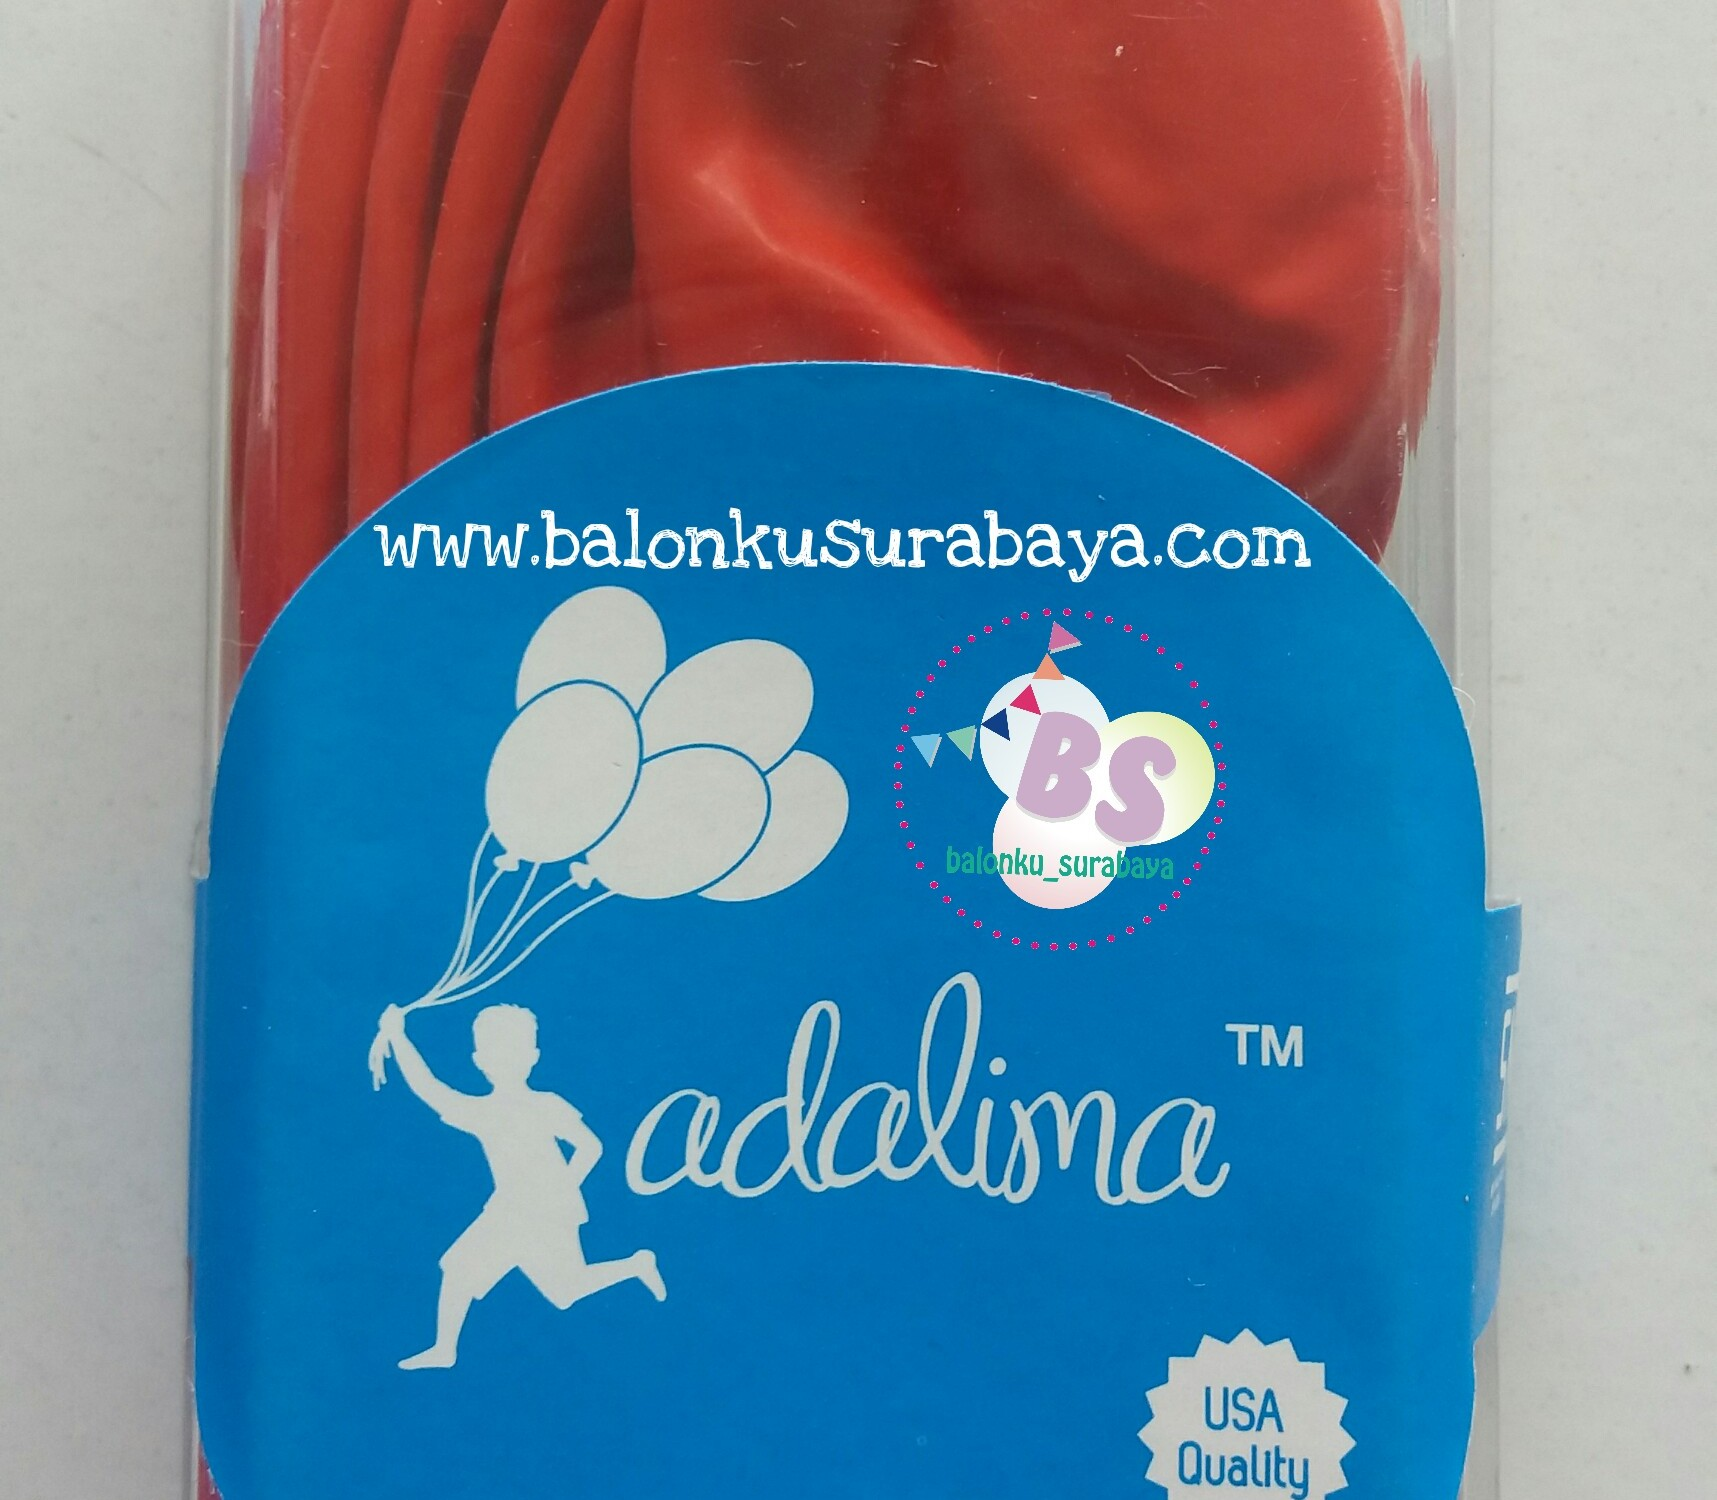 balon latex, balon warna merah, balon tebal, balon dekorasi, suplier balon